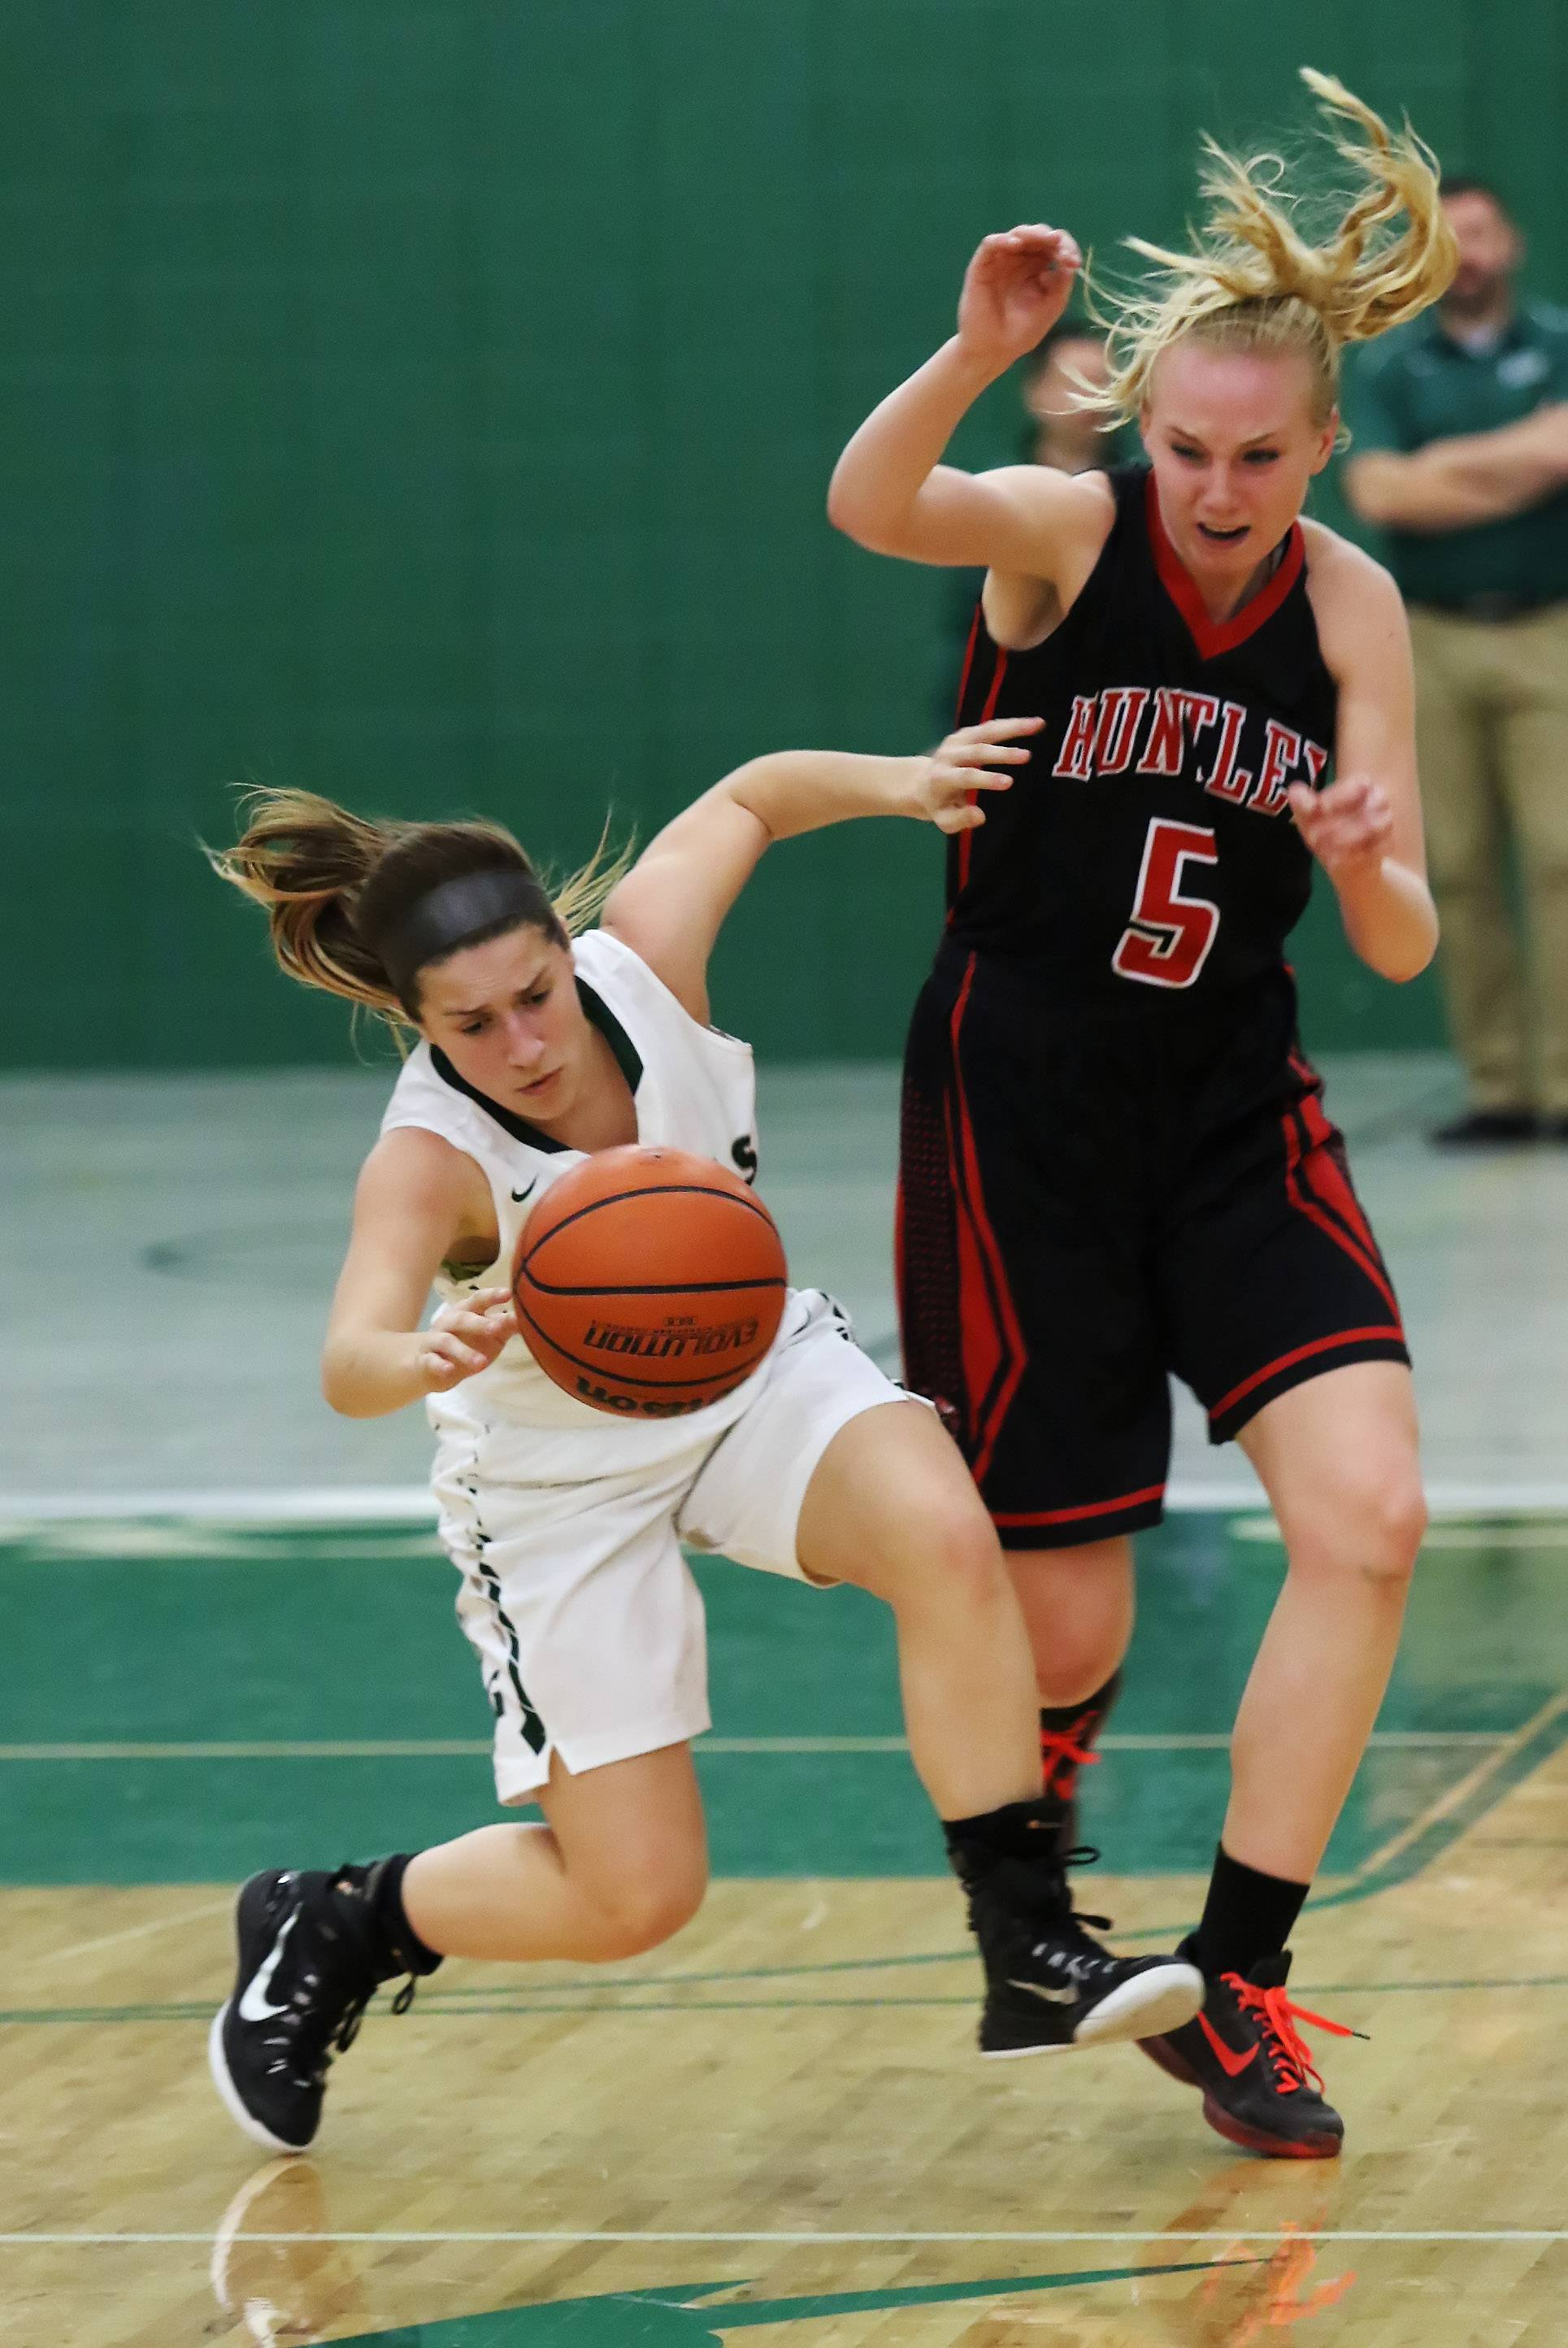 Grayslake Central guard Quin Garbett is fouled by Huntley forward Morgan Clausen on Thursday at Grayslake Central.